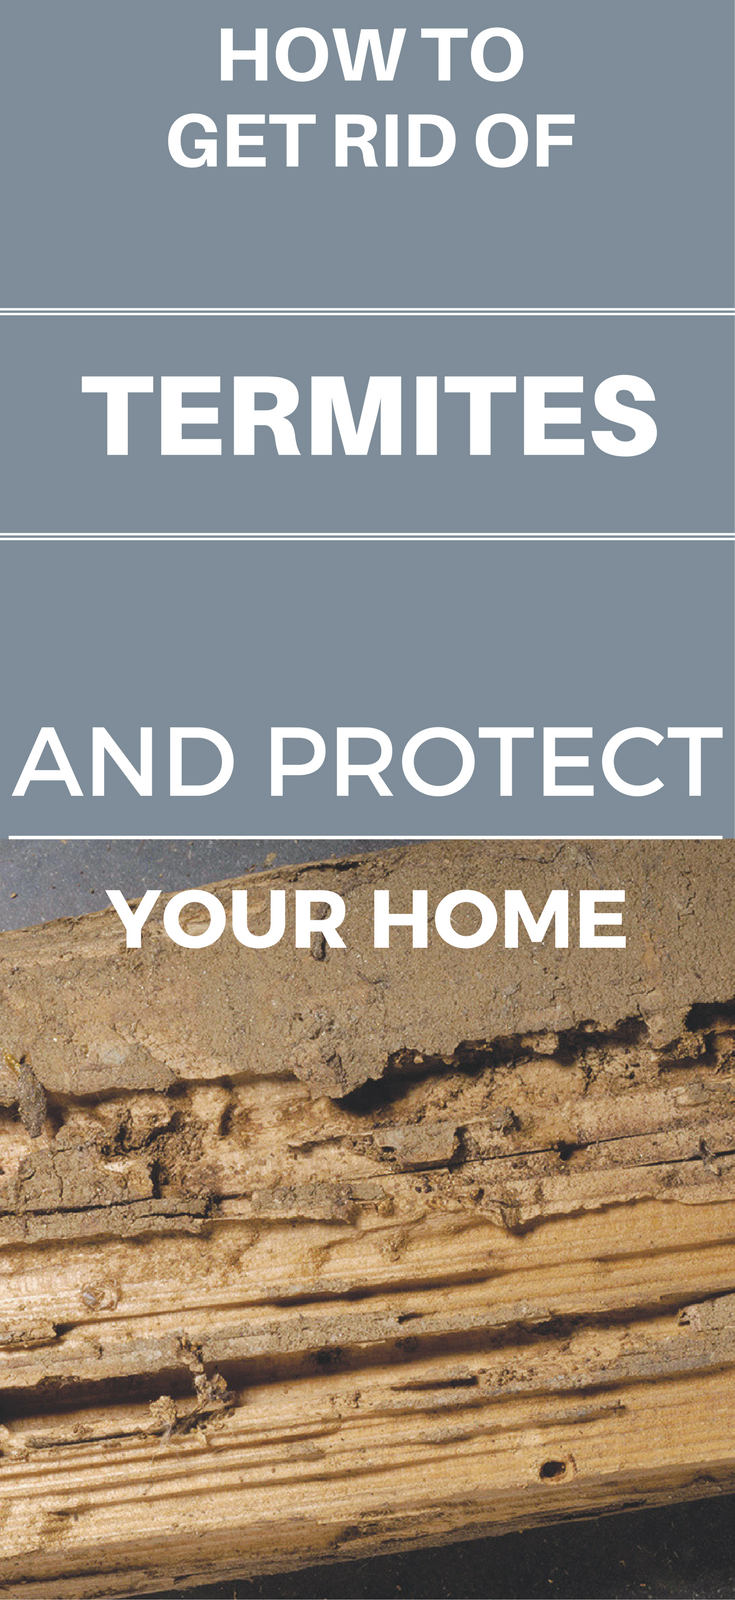 How To Get Rid Of Termites And Protect Your House